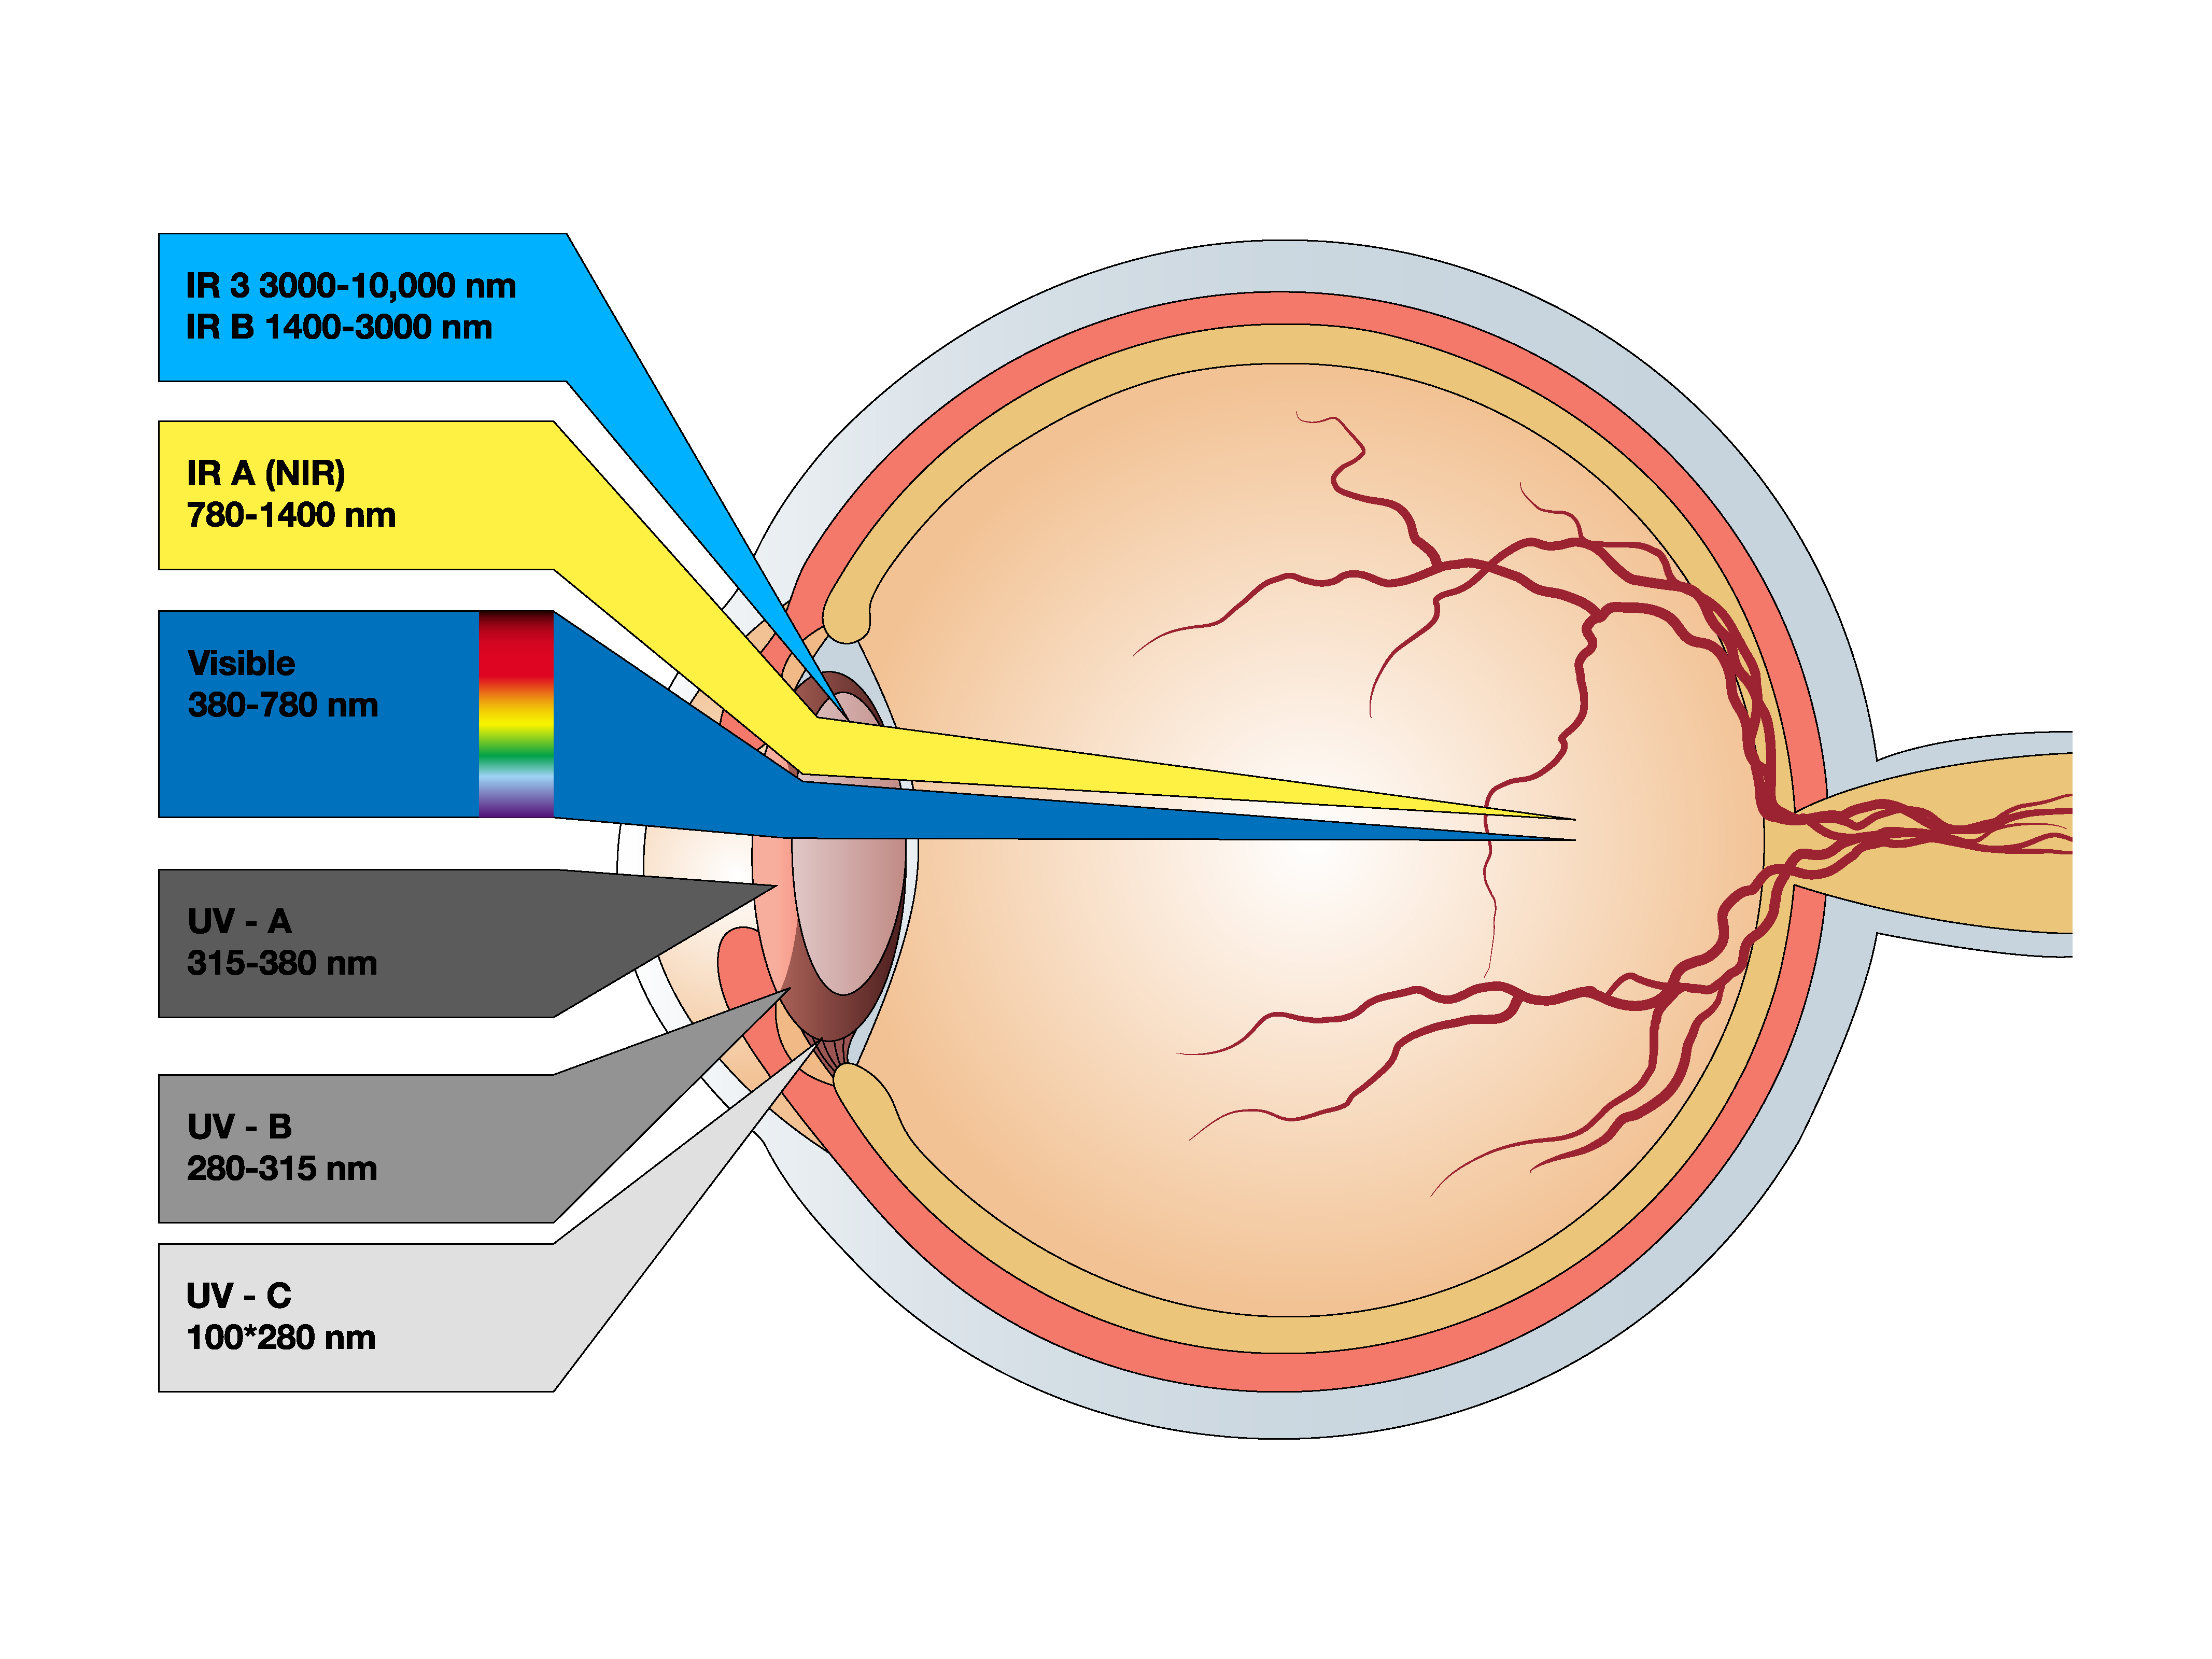 Wavelengths impacting different parts of the eye